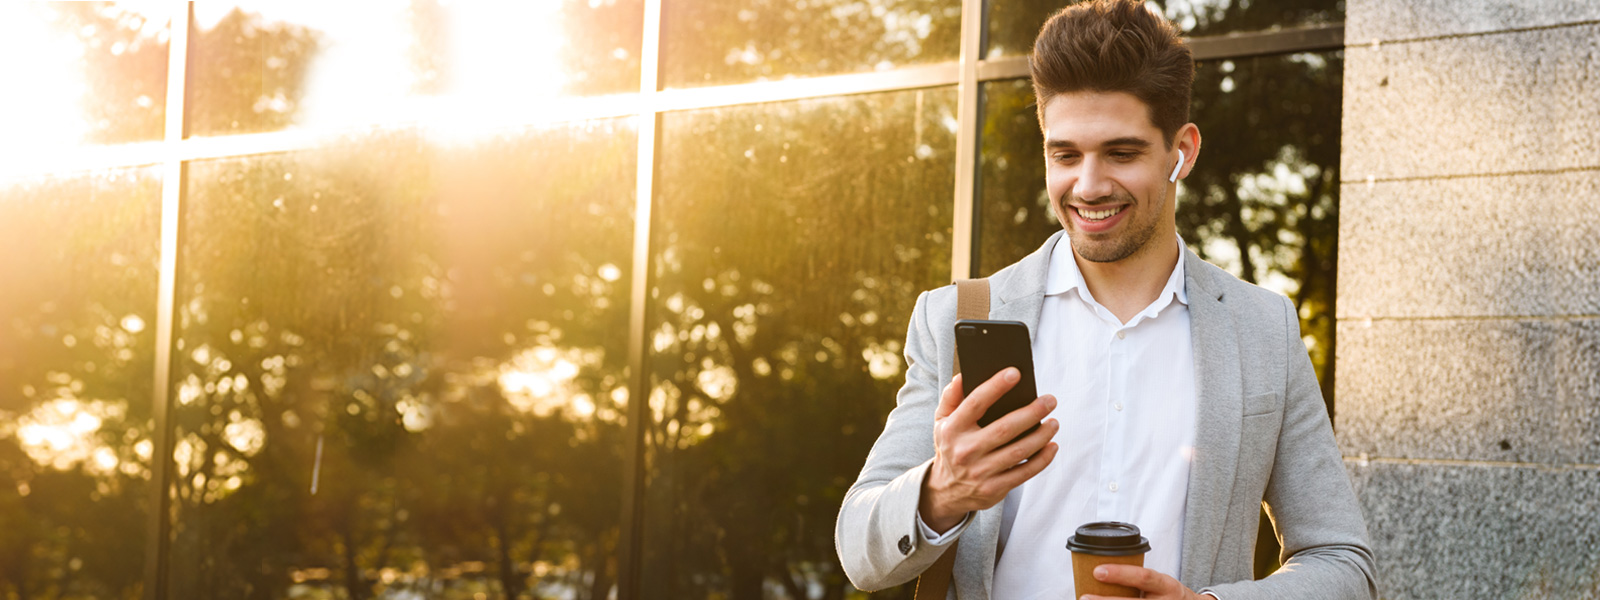 Man looking at phone, with airpod in his ear, standing in front of a building with the sun shining off the windows